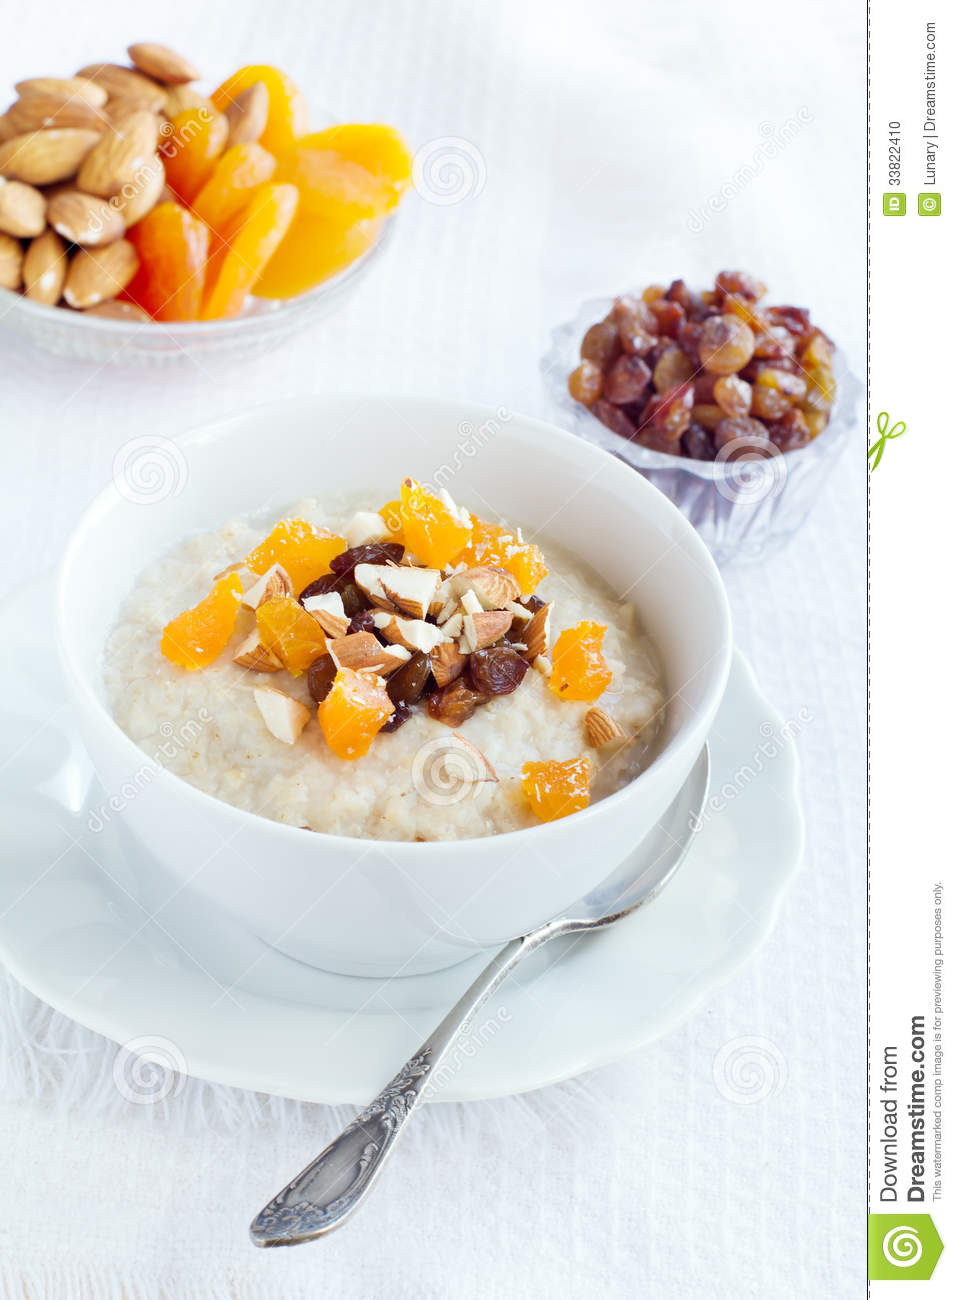 Oatmeal with dried fruit and nuts.